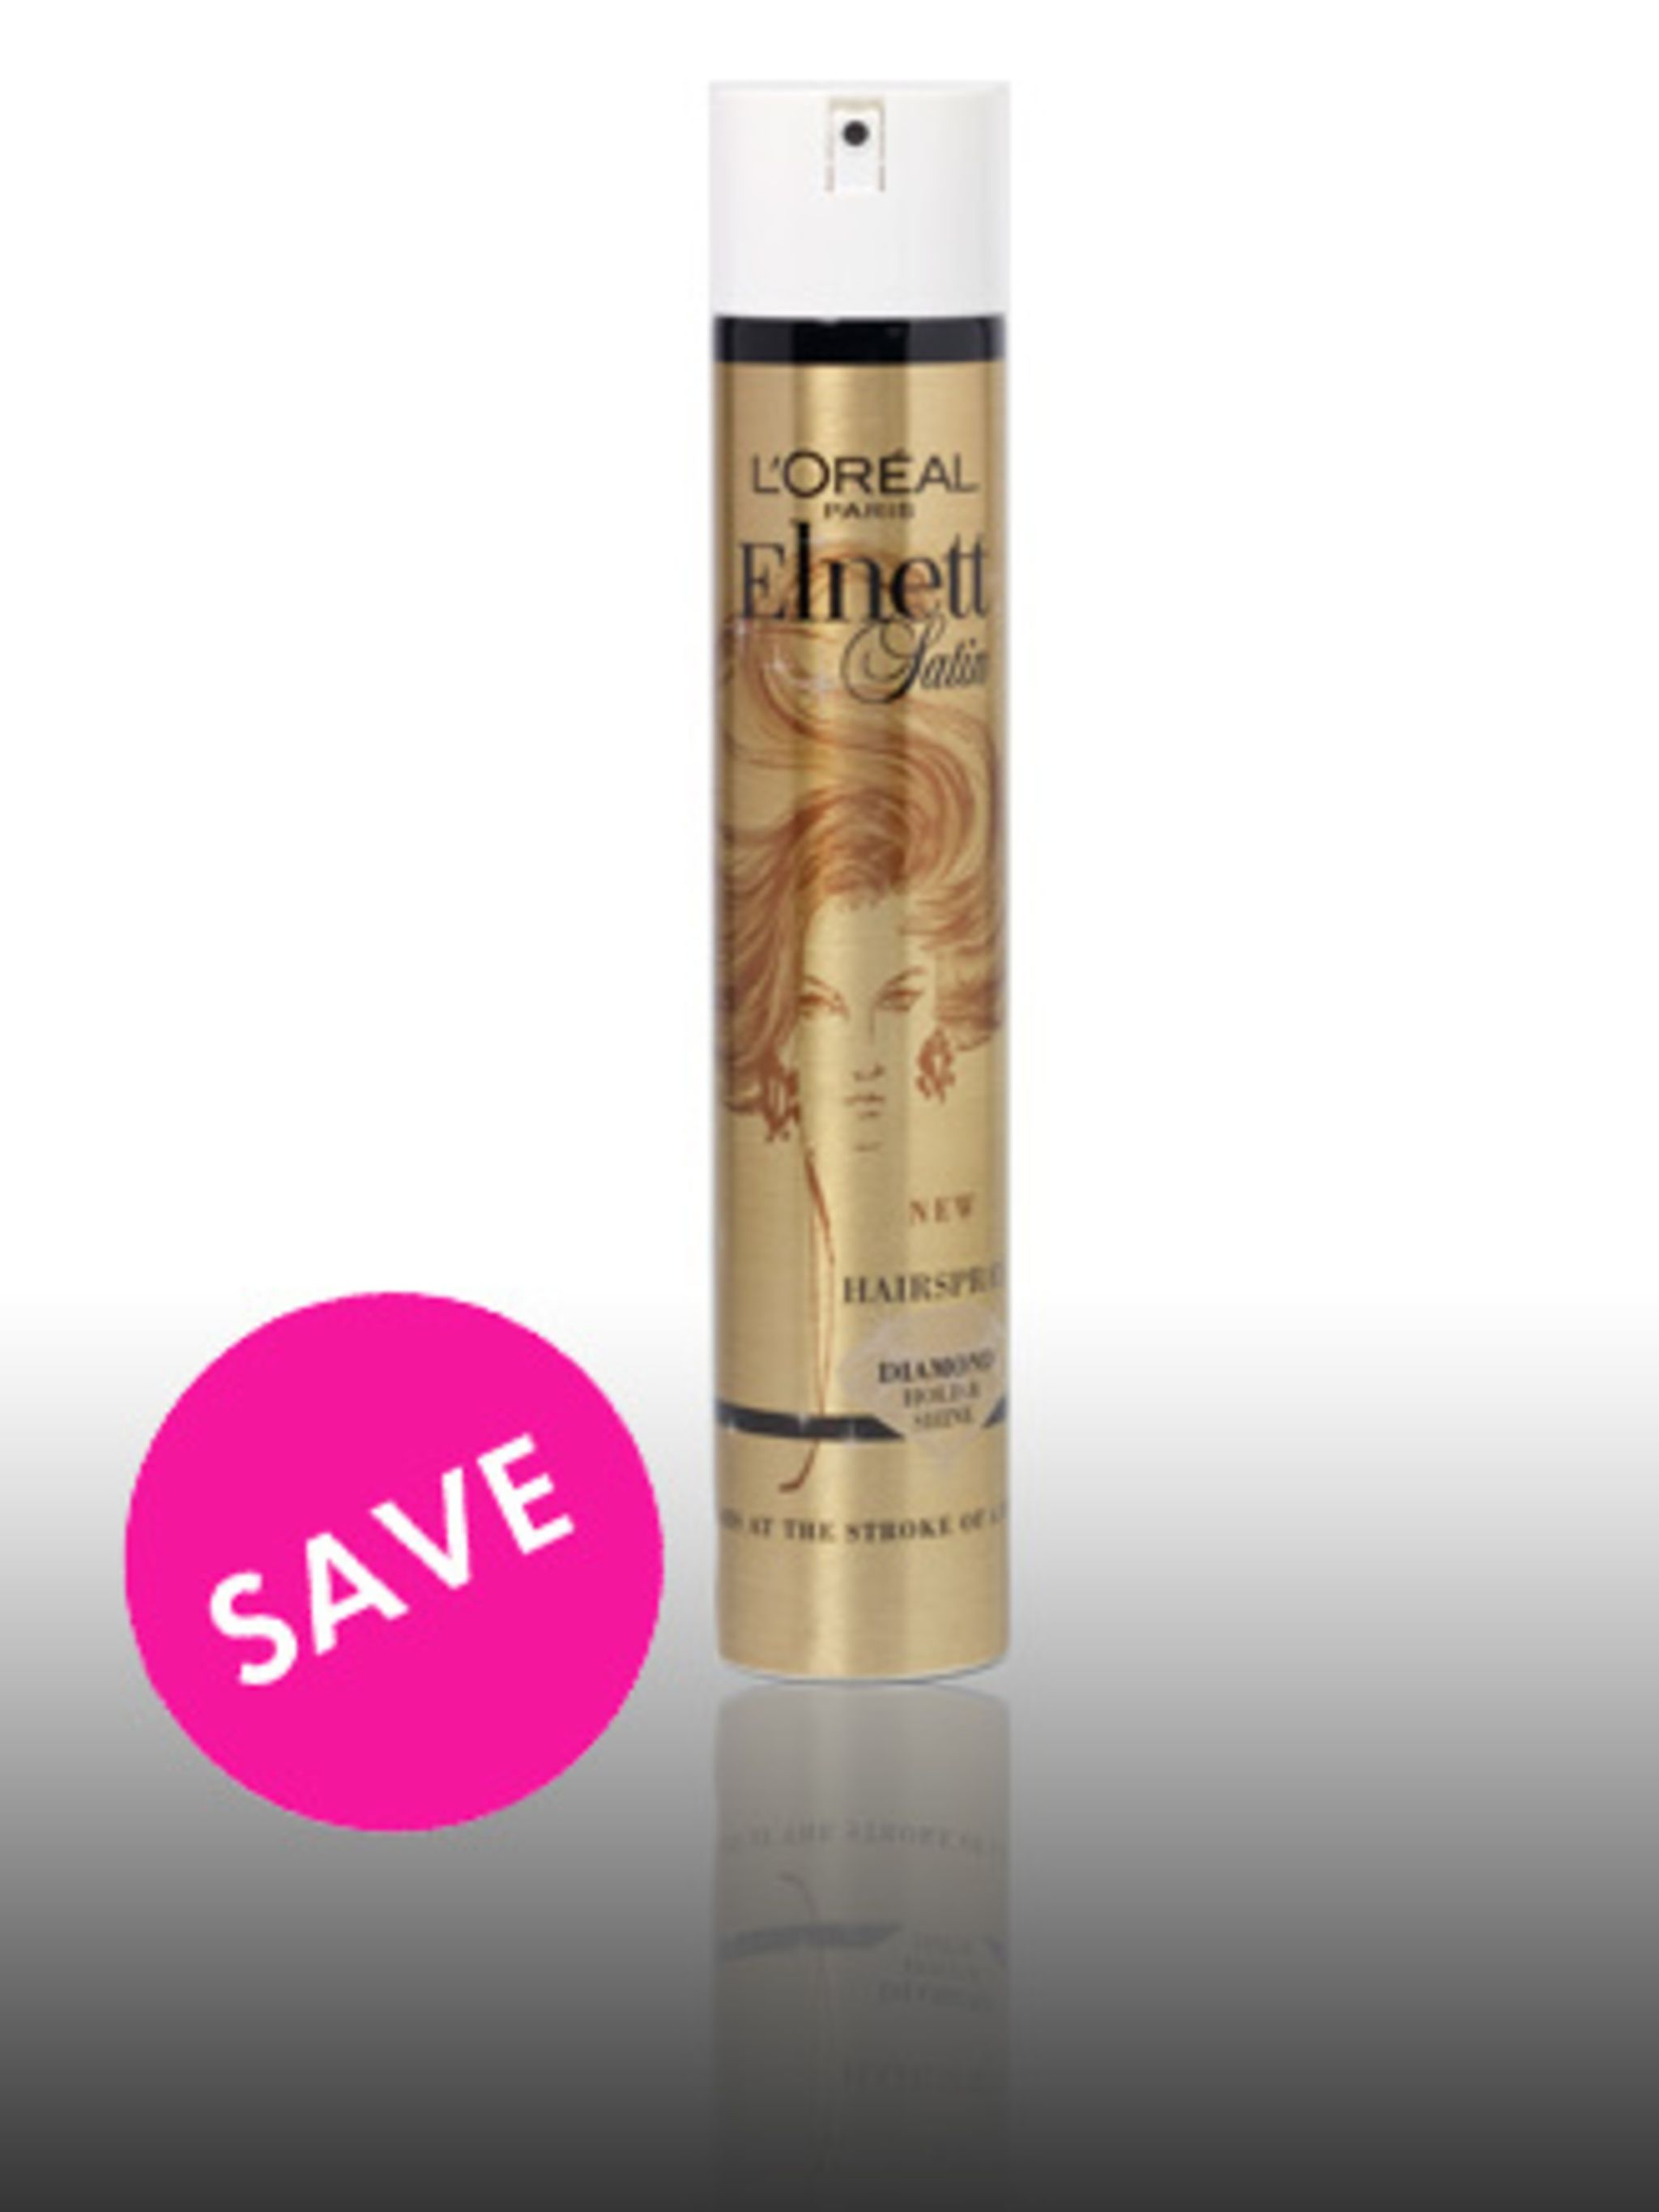 """<p>Hairspray, £5.49 by Elnett at <a href=""""http://www.boots.com/brandtreatment/product_details_brand_treatment.jsp?productid=1005007&classificationid=1040320"""">Boots</a> </p><p>For a purse- friendly purchase that gives hard-to-beat results, pick up some"""